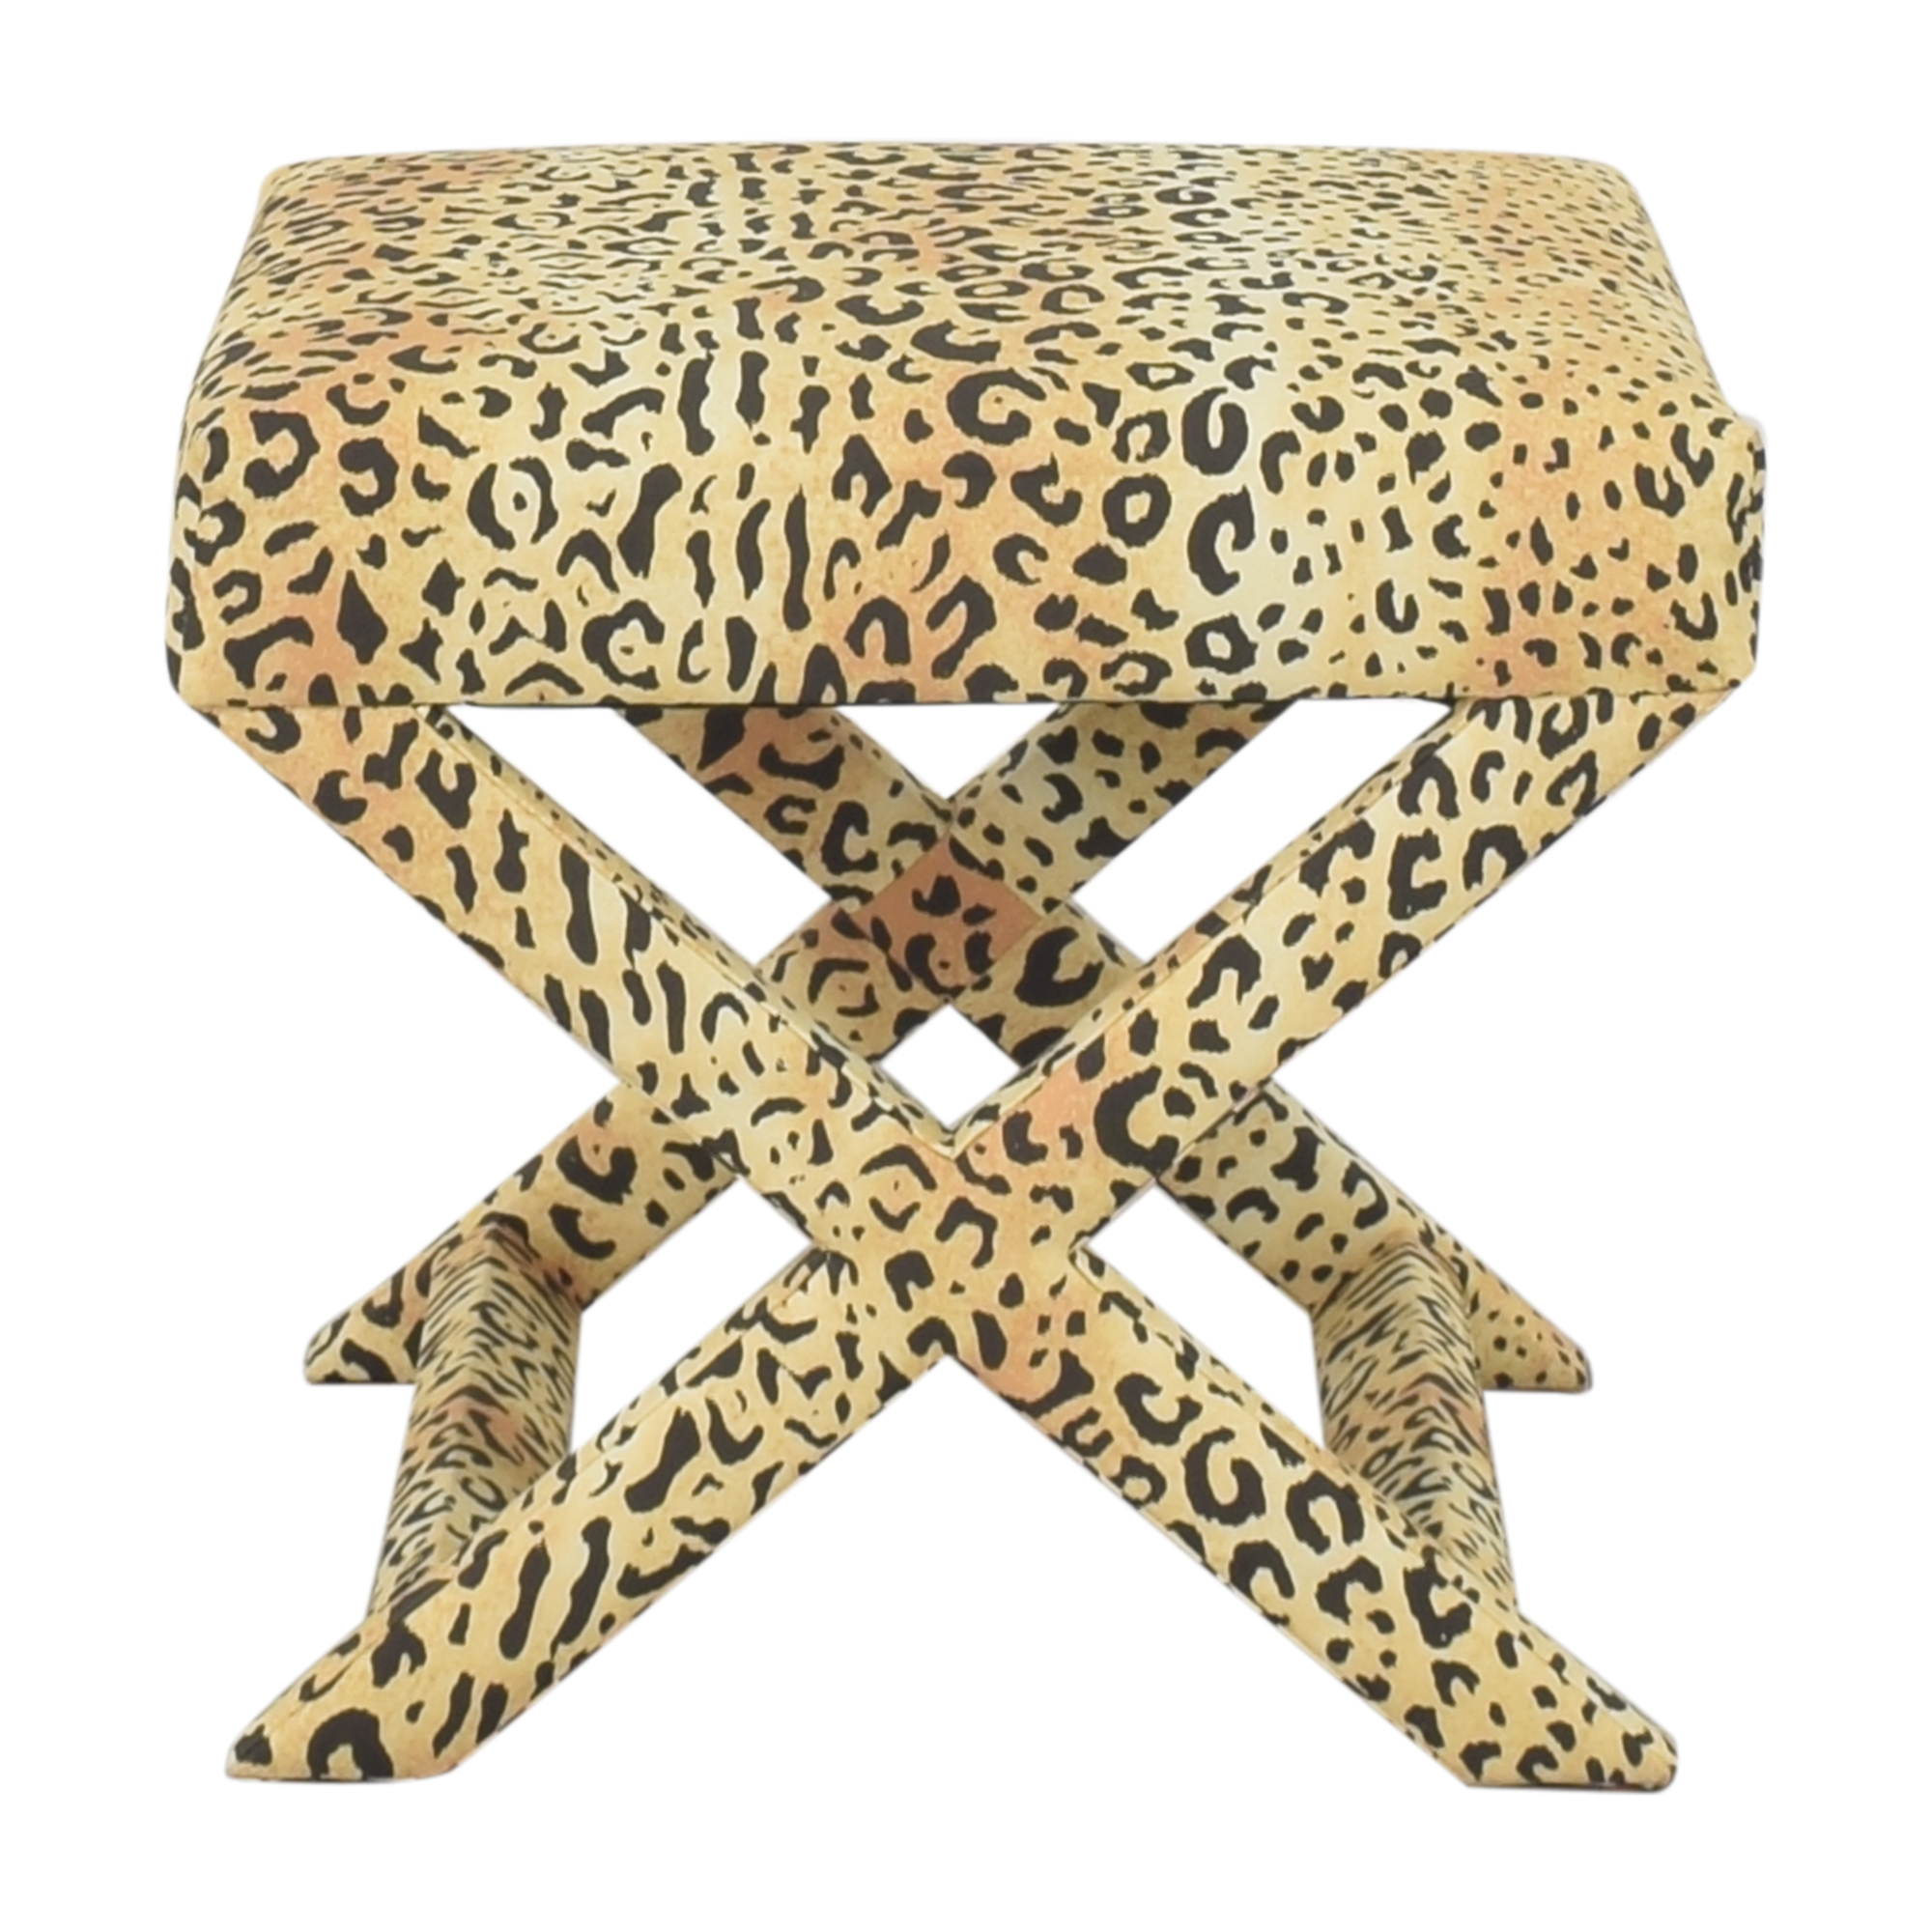 buy The Inside Leopard X Bench The Inside Ottomans